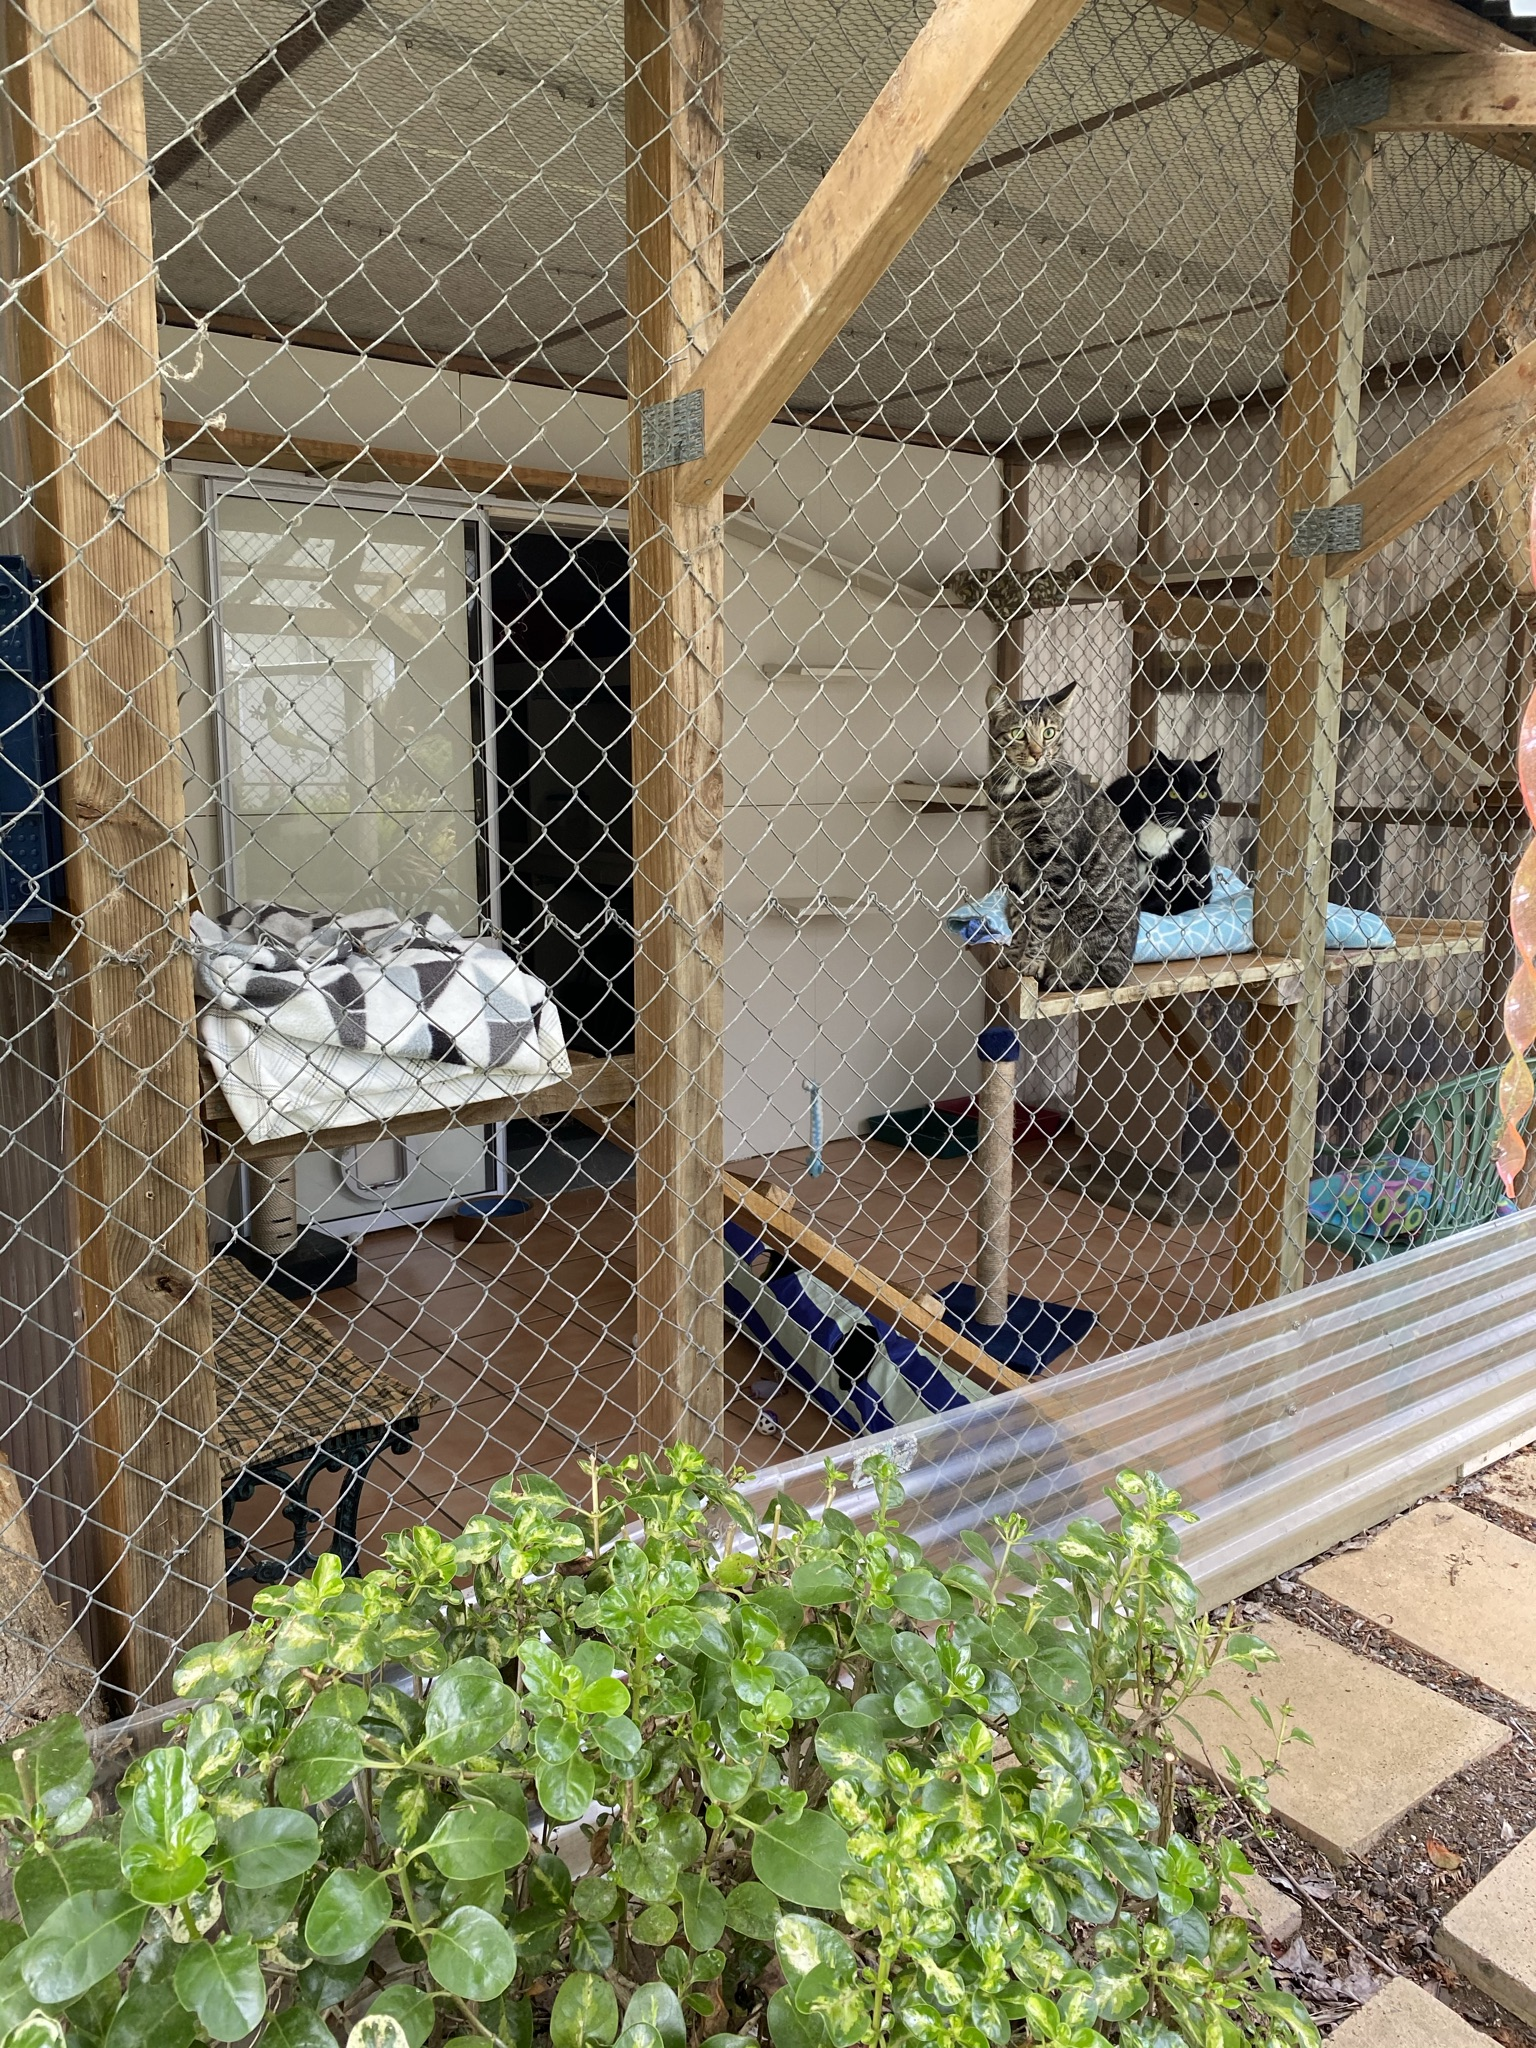 main cattery outside area